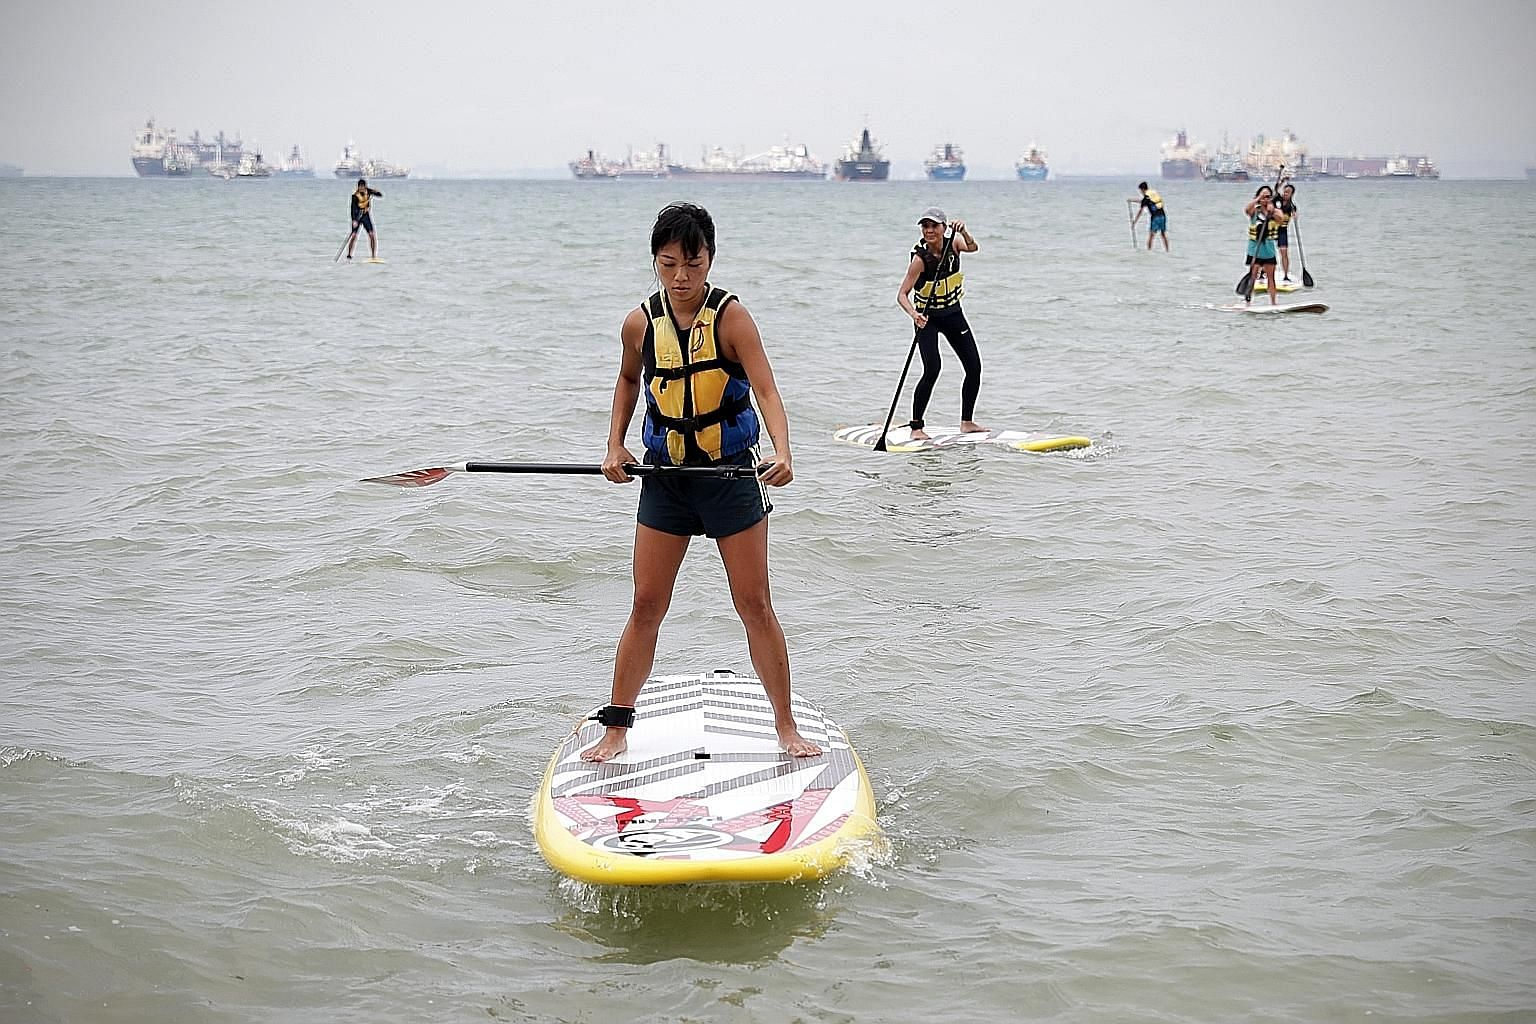 Ms Jessica Wee (foreground) heading back to shore after a session with the stand-up paddling interest group at East Coast Park. ST PHOTO: NEO XIAOBIN